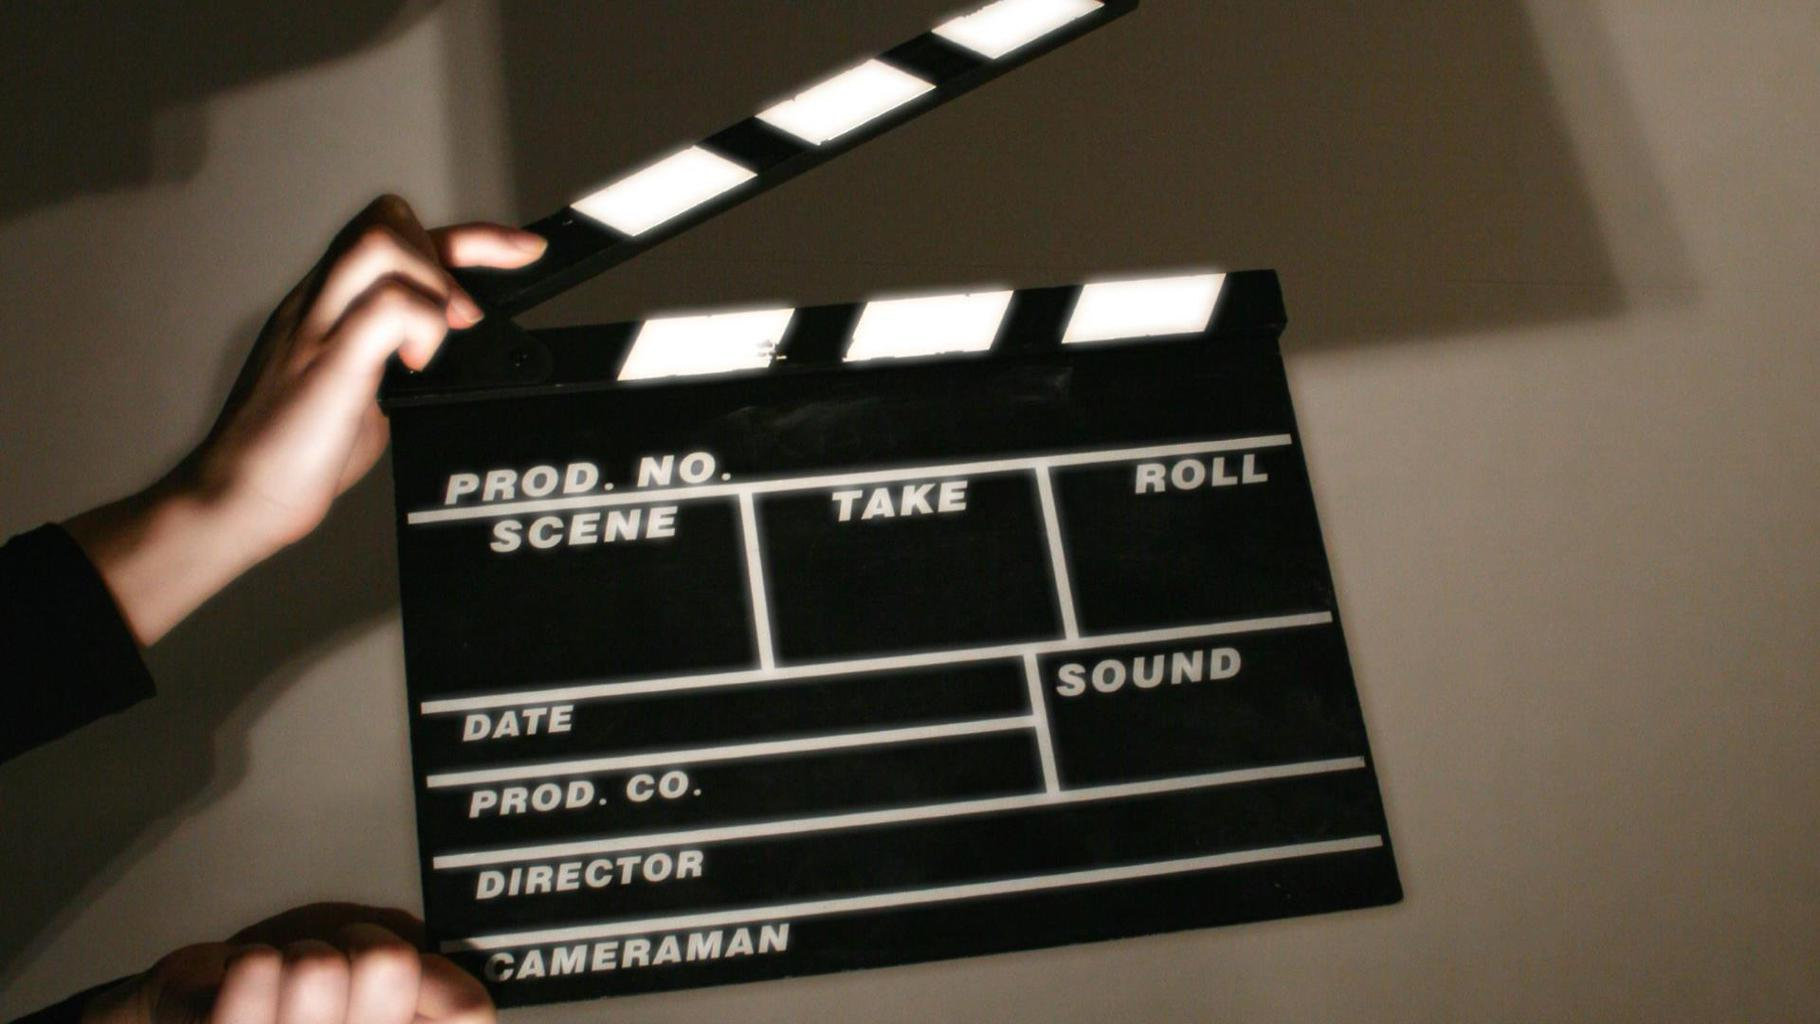 A clapper board used by production crews. By Christian Wagner for FreeImages.